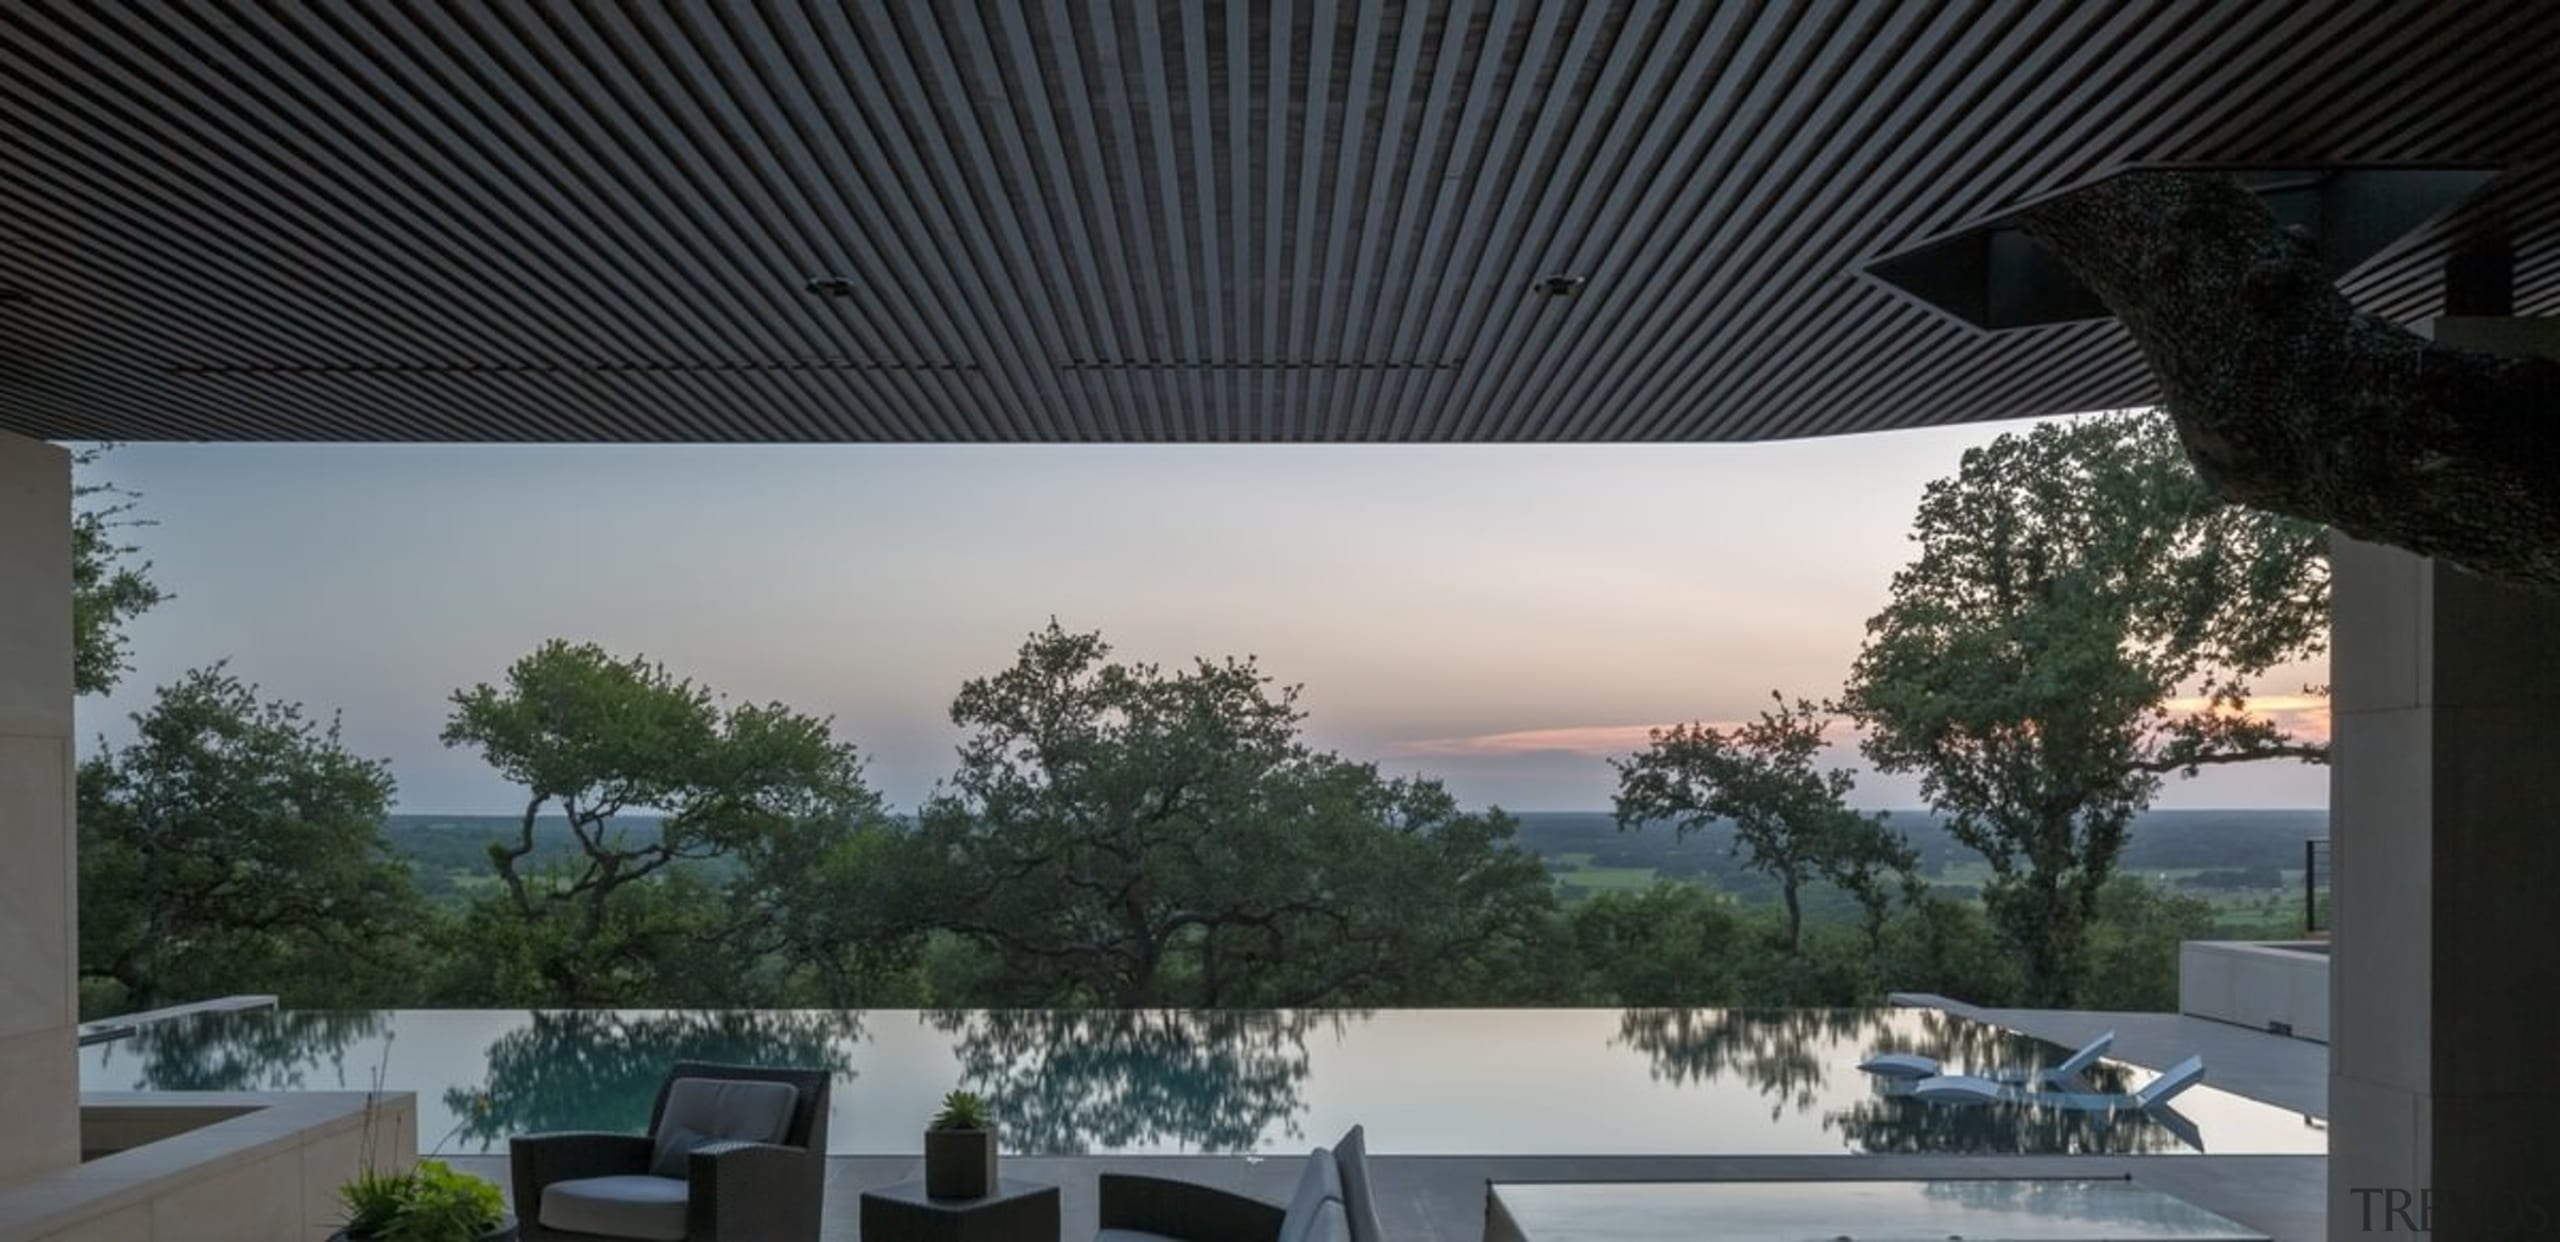 The tree line seems to rise up out architecture, daylighting, home, house, interior design, property, real estate, roof, shade, sky, window, black, gray